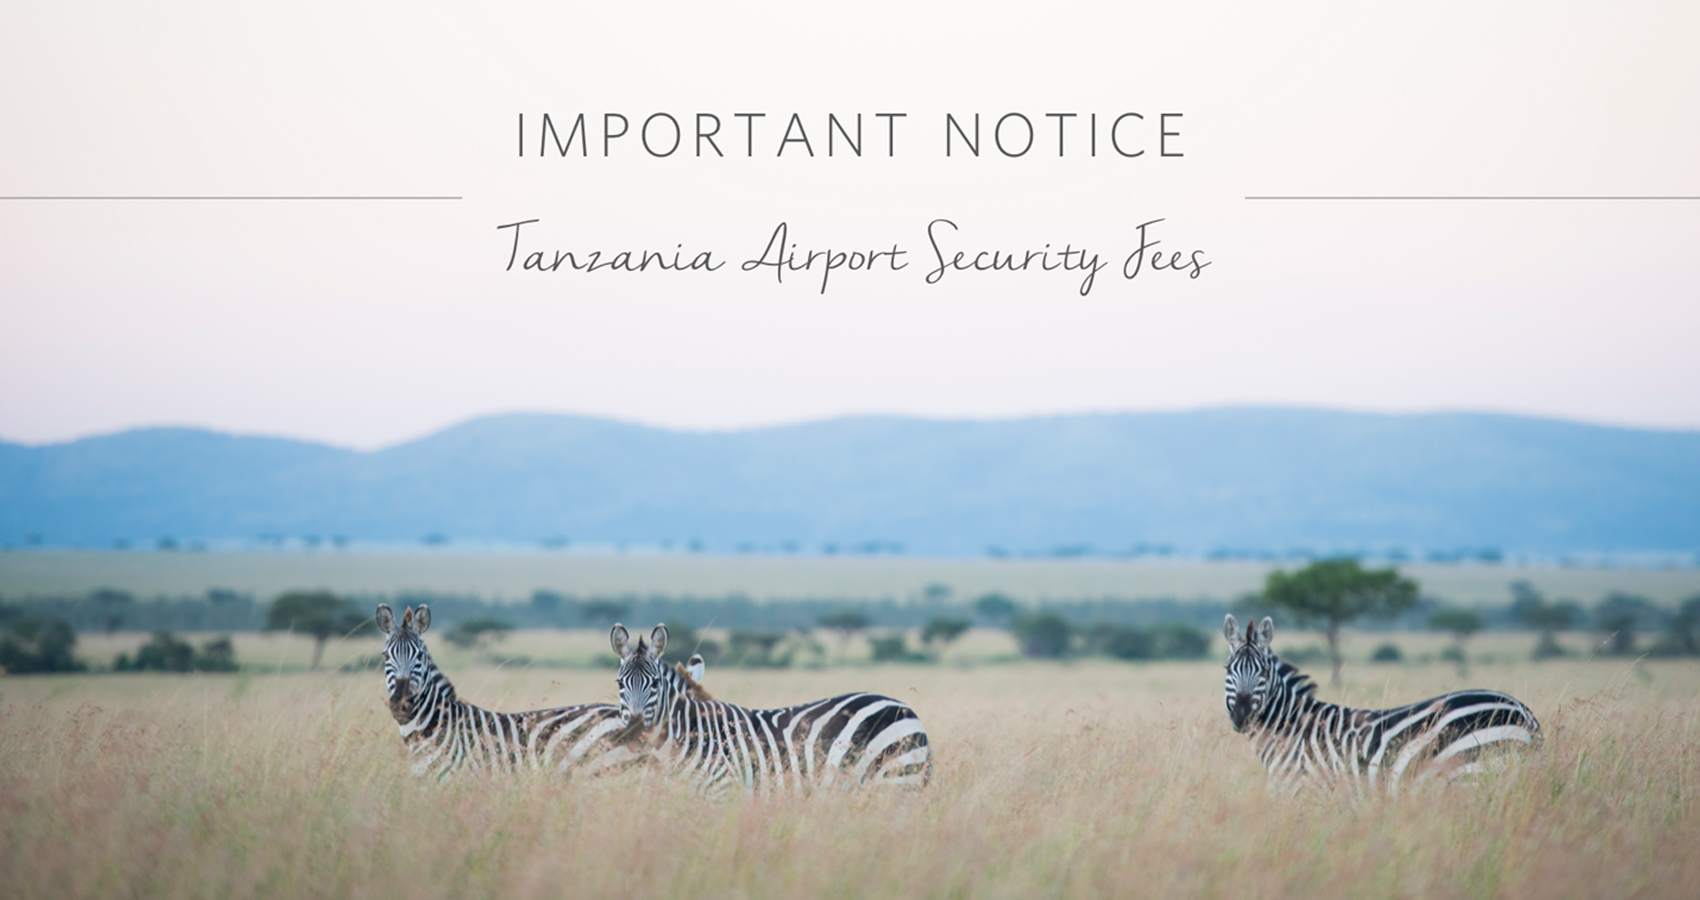 New_Tanzania_Airport_Security_Fee